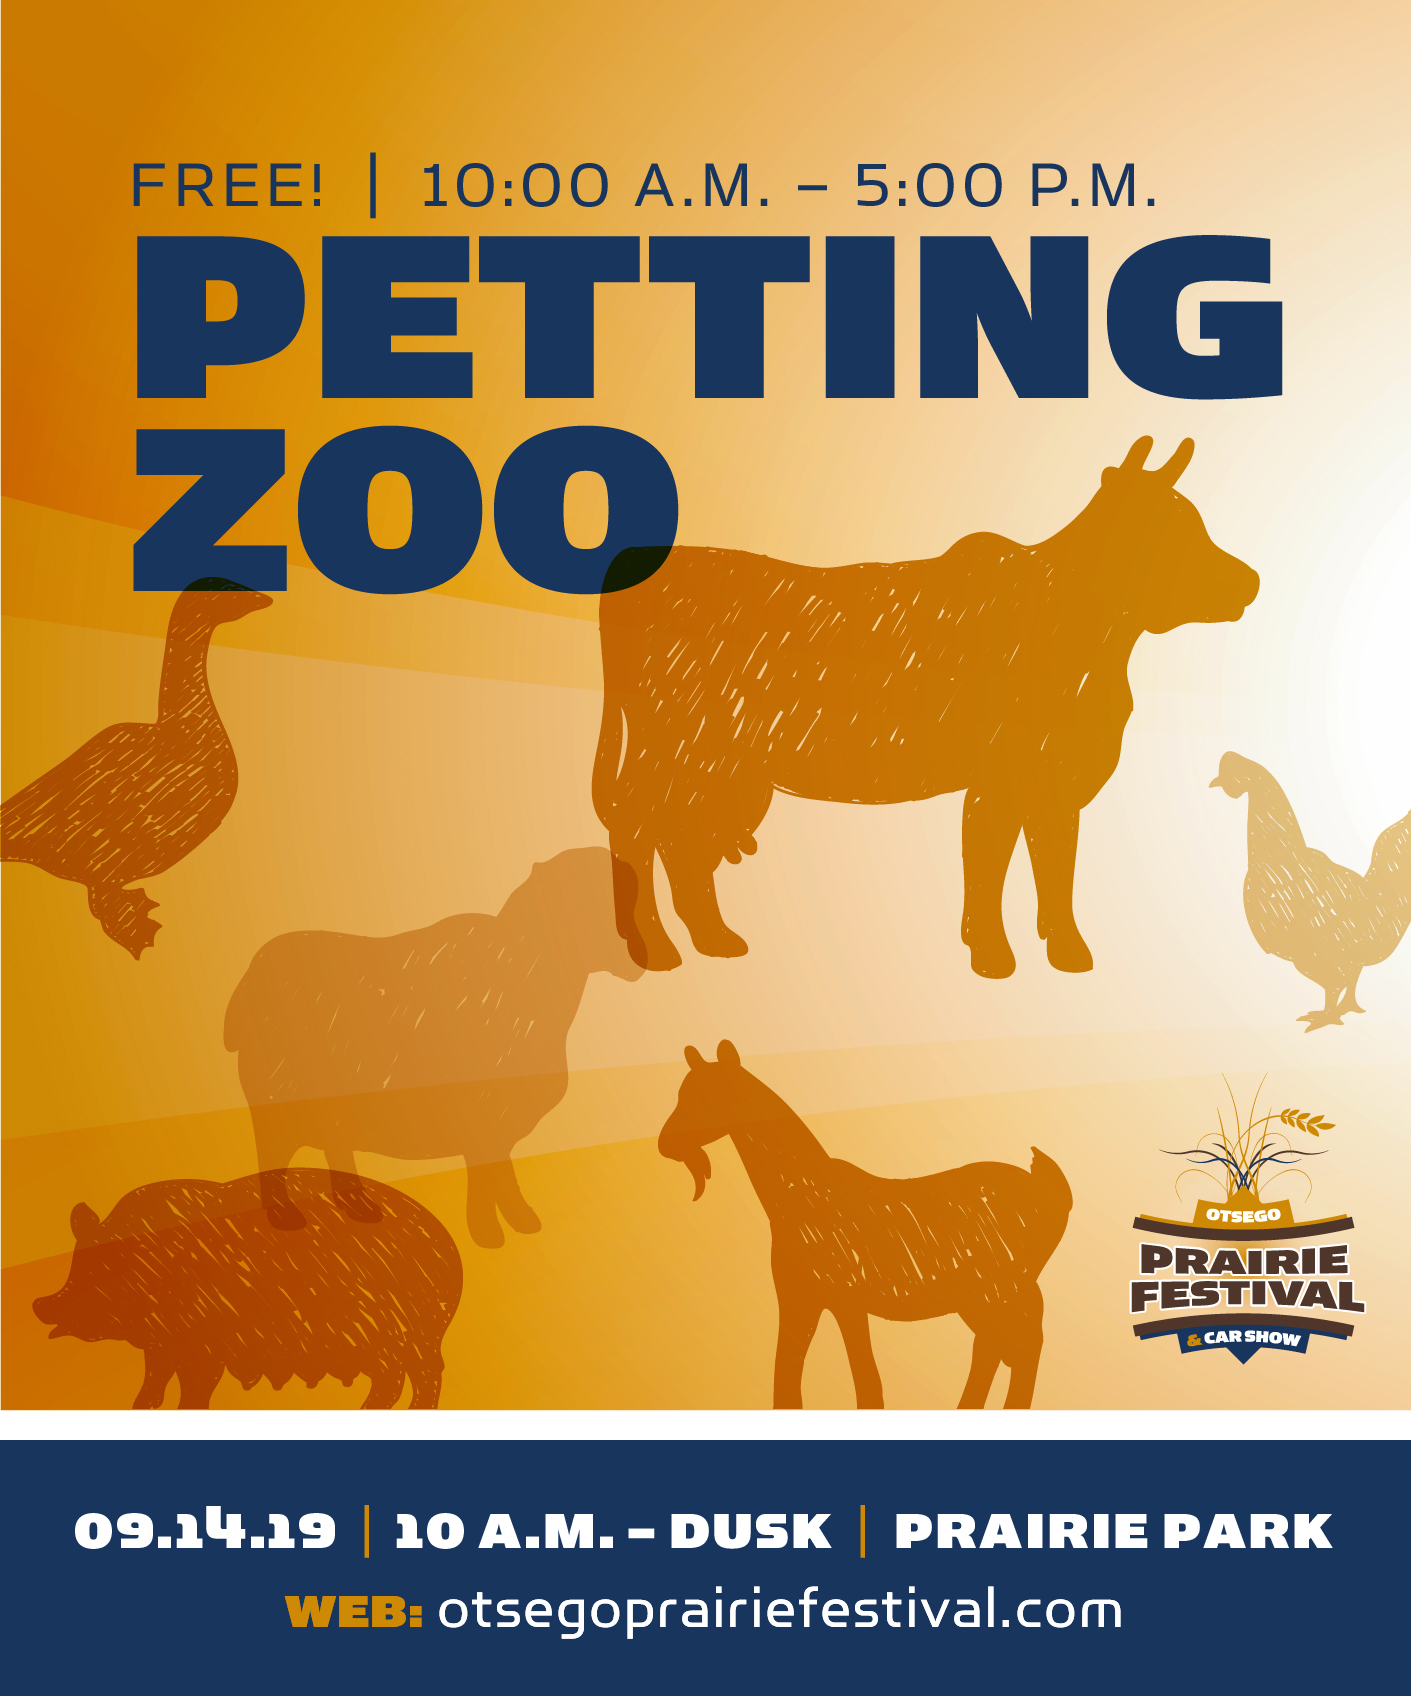 FB_PettingZoo_2019